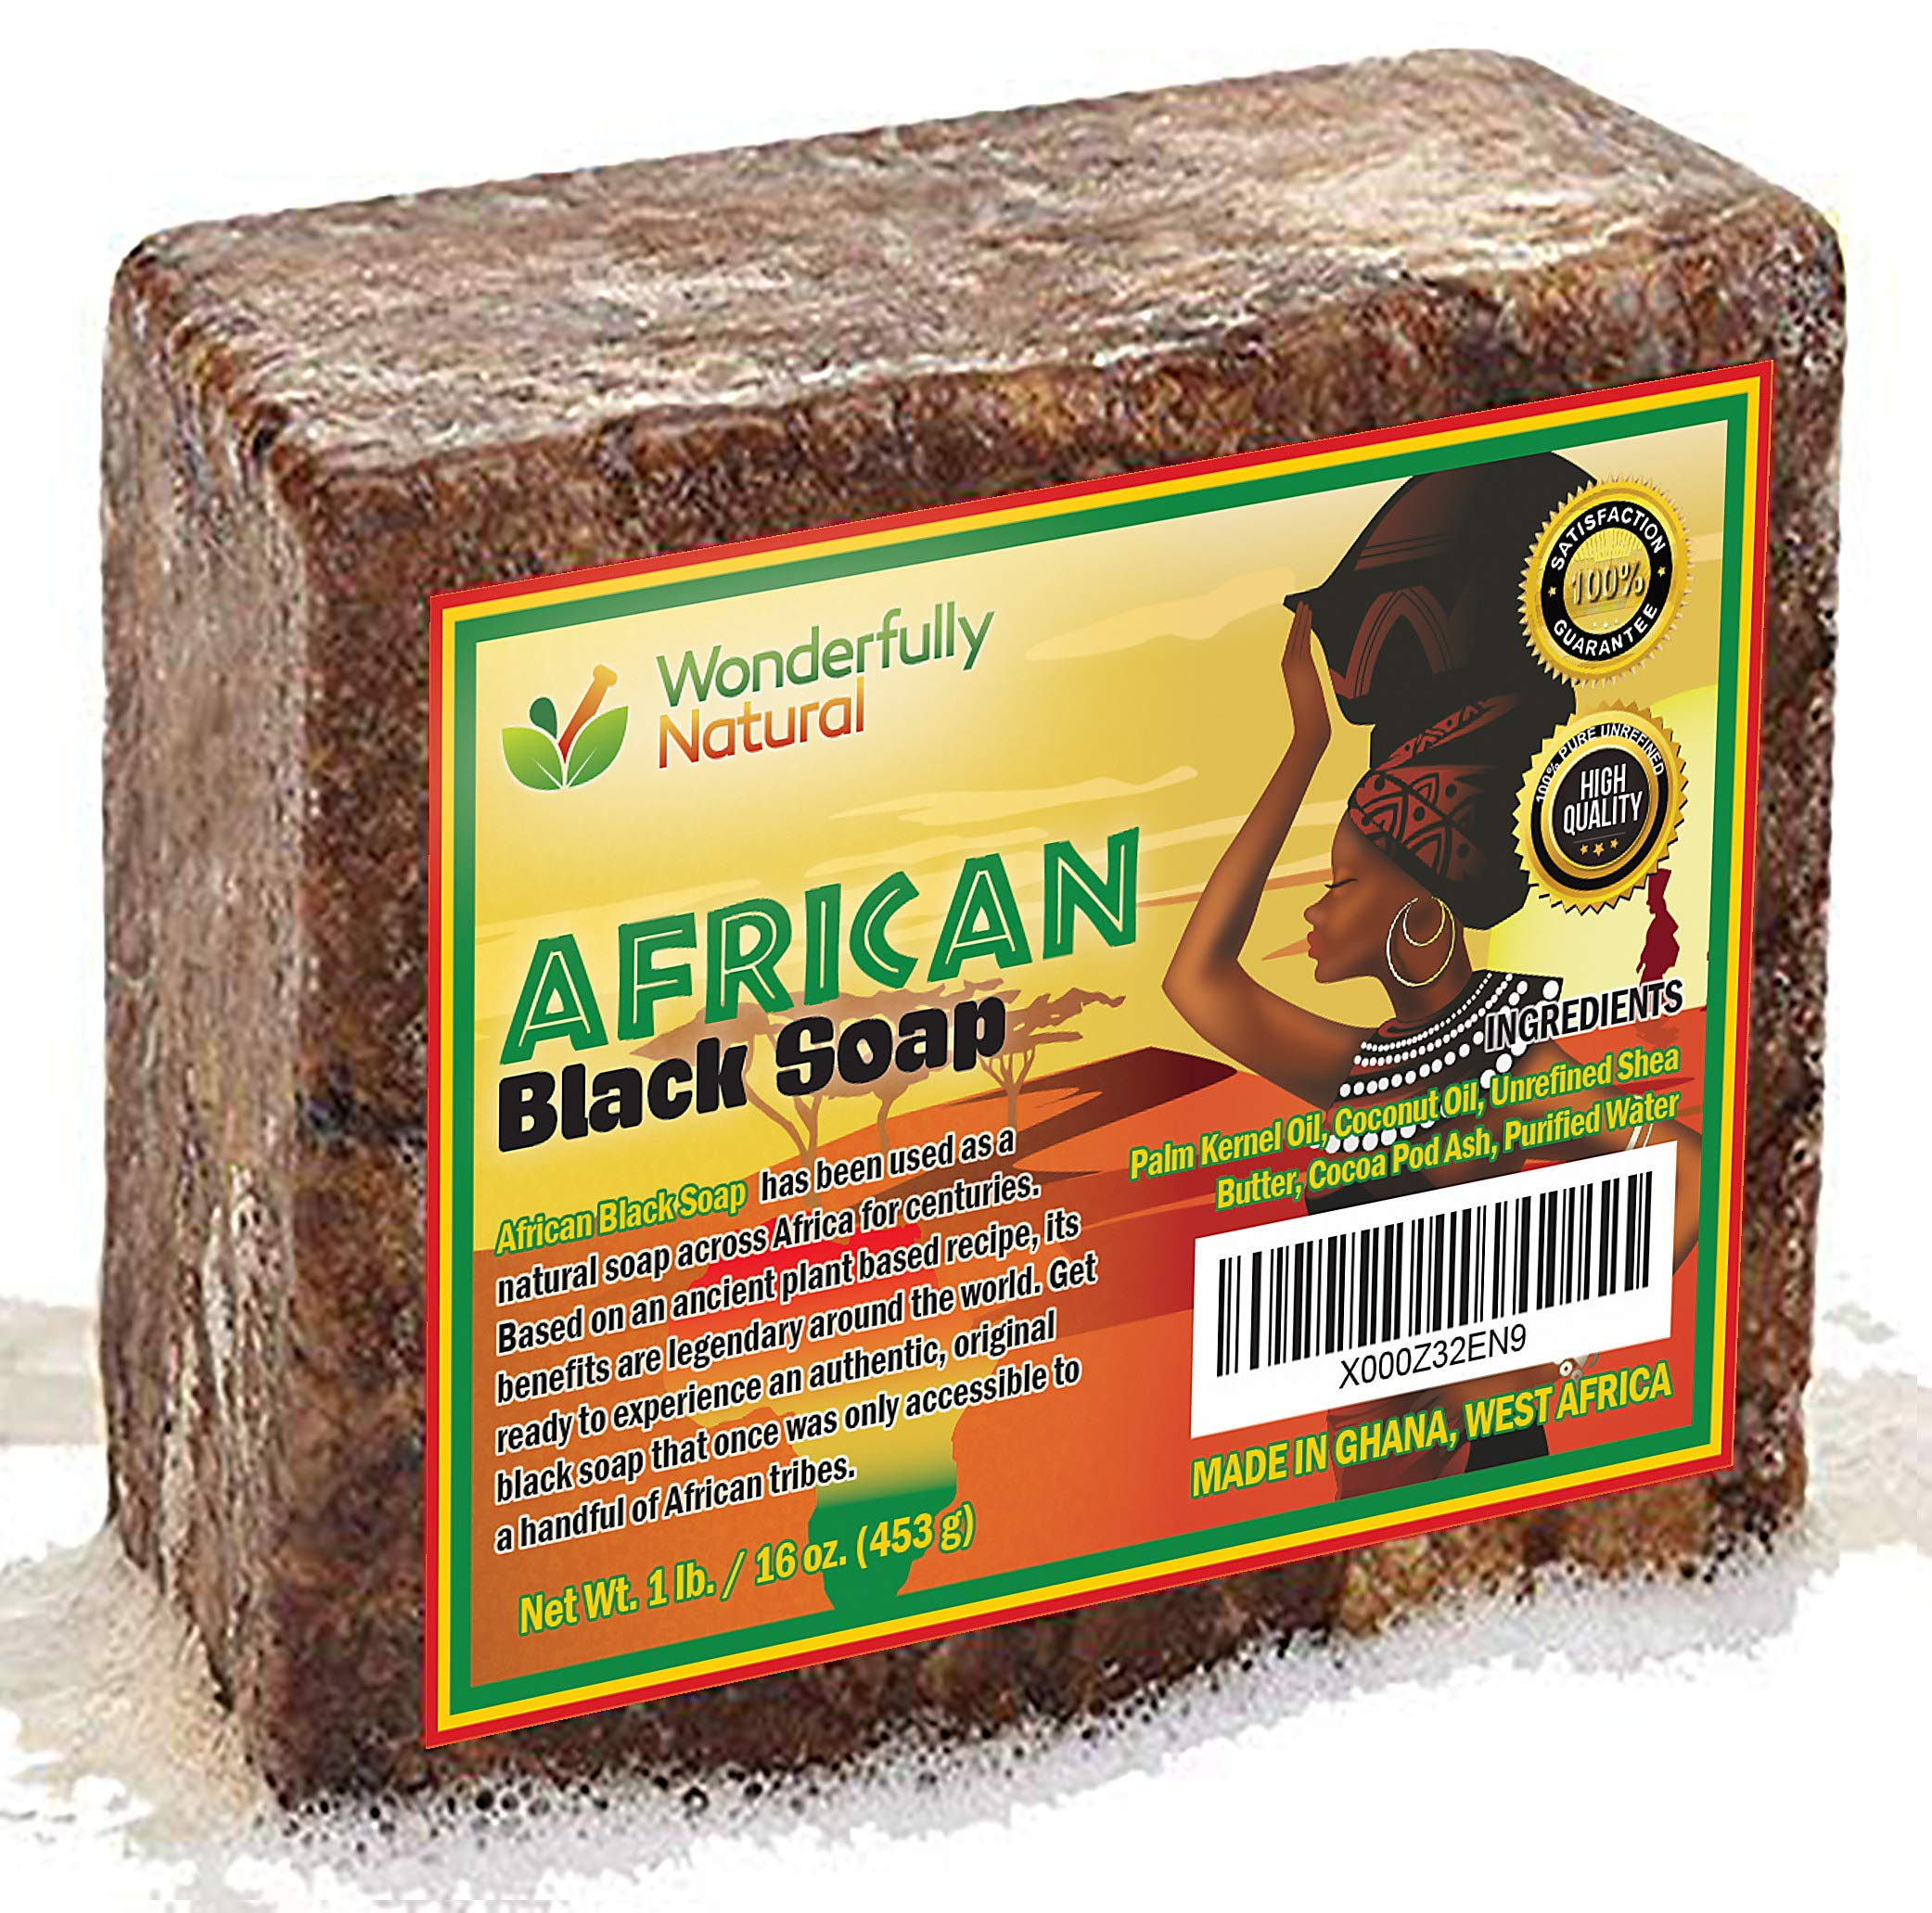 #1 Organic African Black Soap   Acne Treatment & Dark Spot Remover   60 day Satisfaction Guarantee   For Face & Body 1lb bar